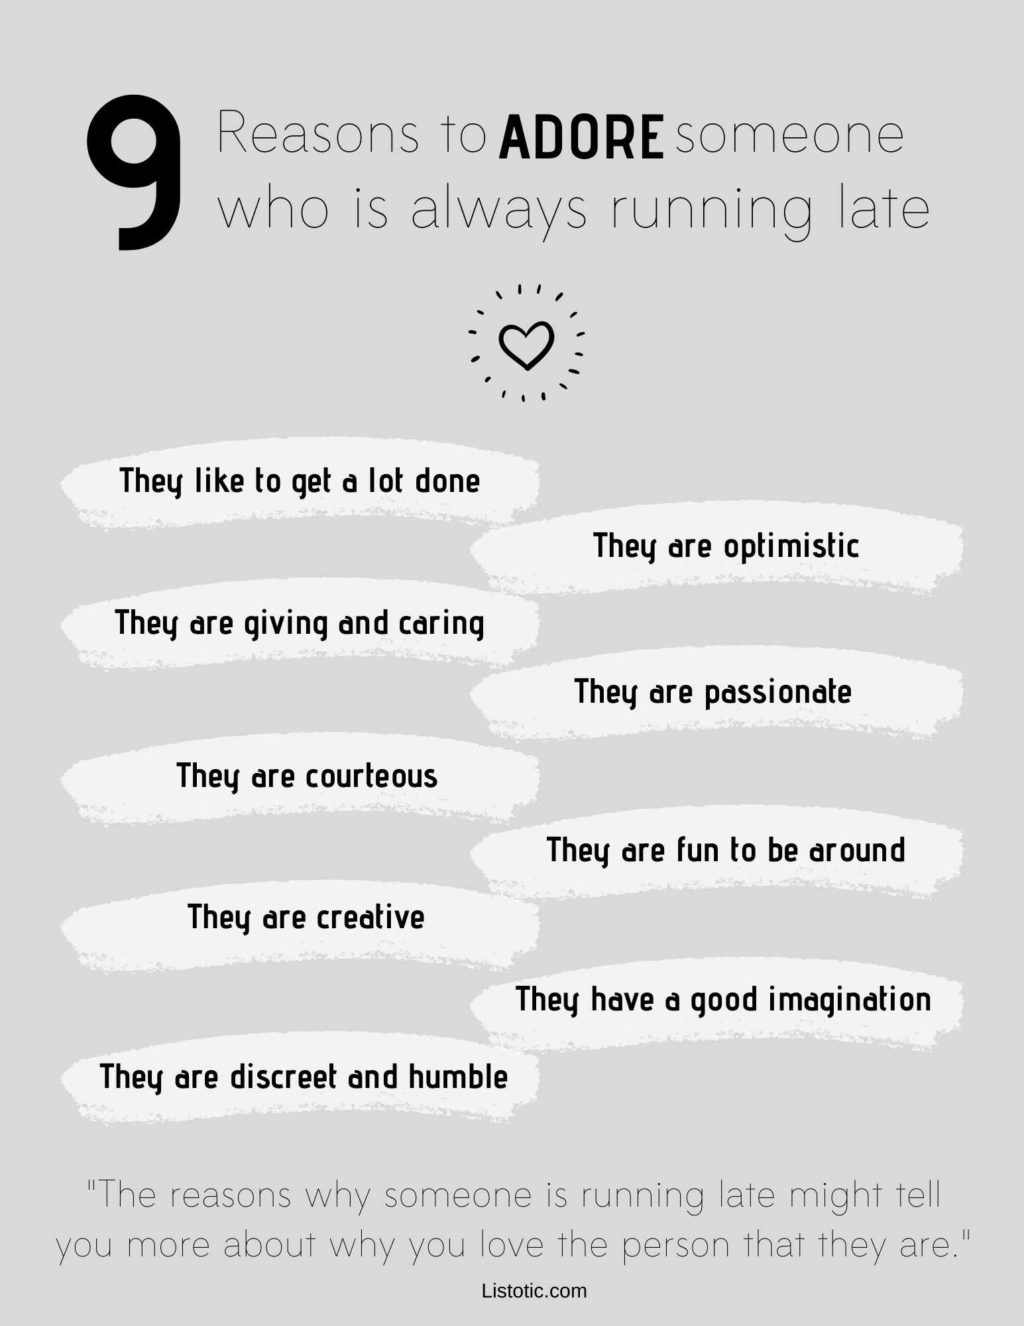 Free printable 9 reasons to adore someone who is always running late